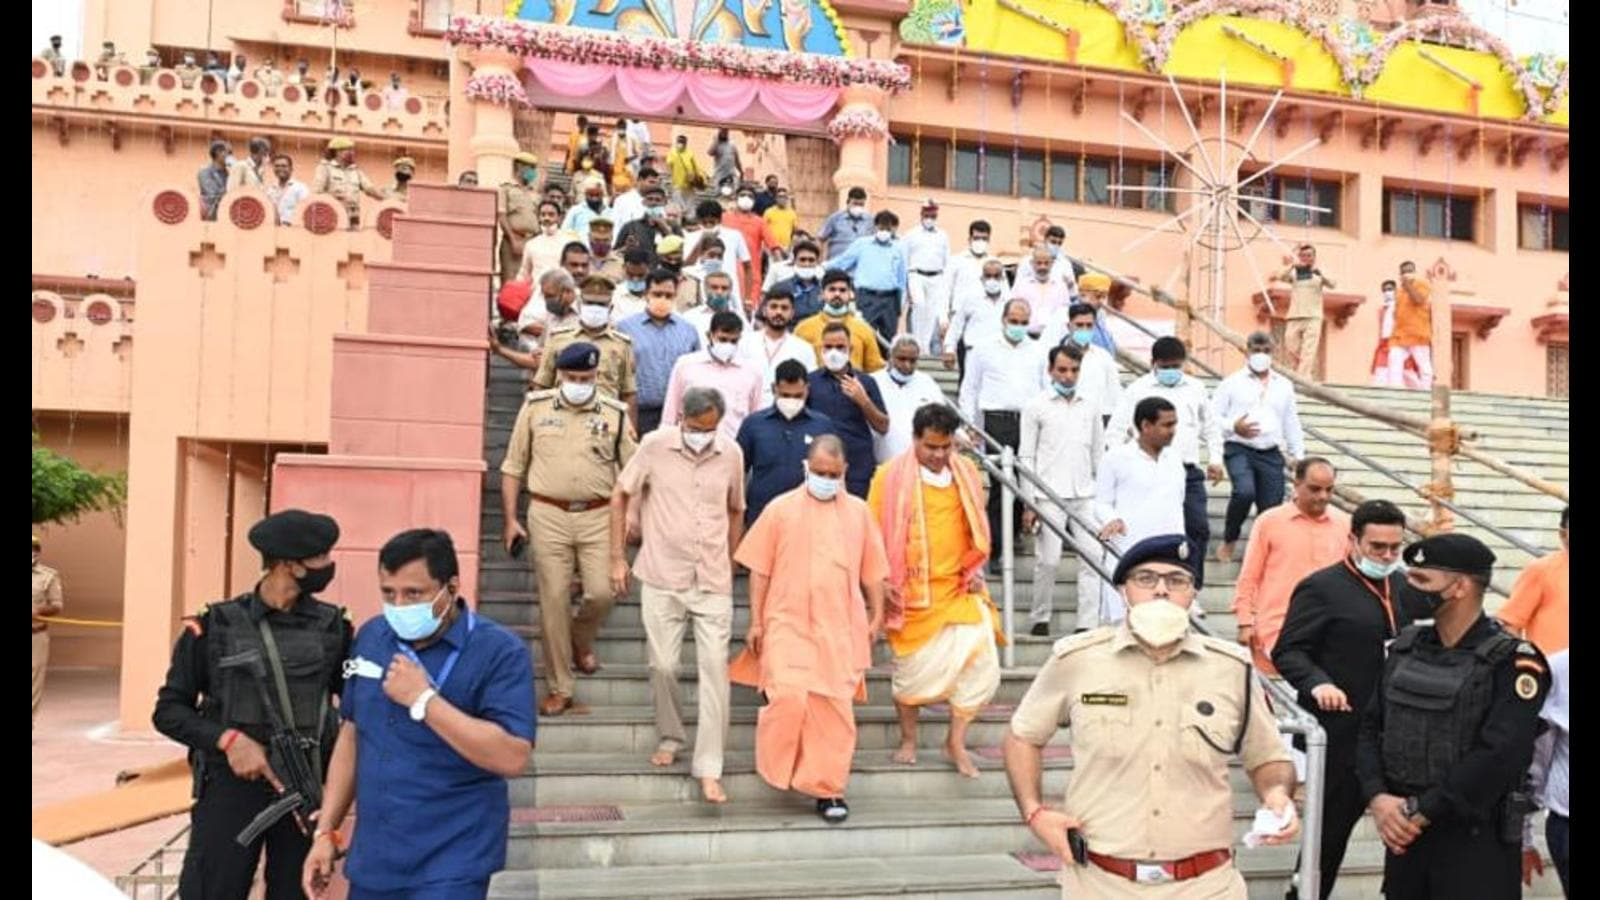 UP government declares 10 sq km area of Mathura-Vrindavan as 'teerth sthal'